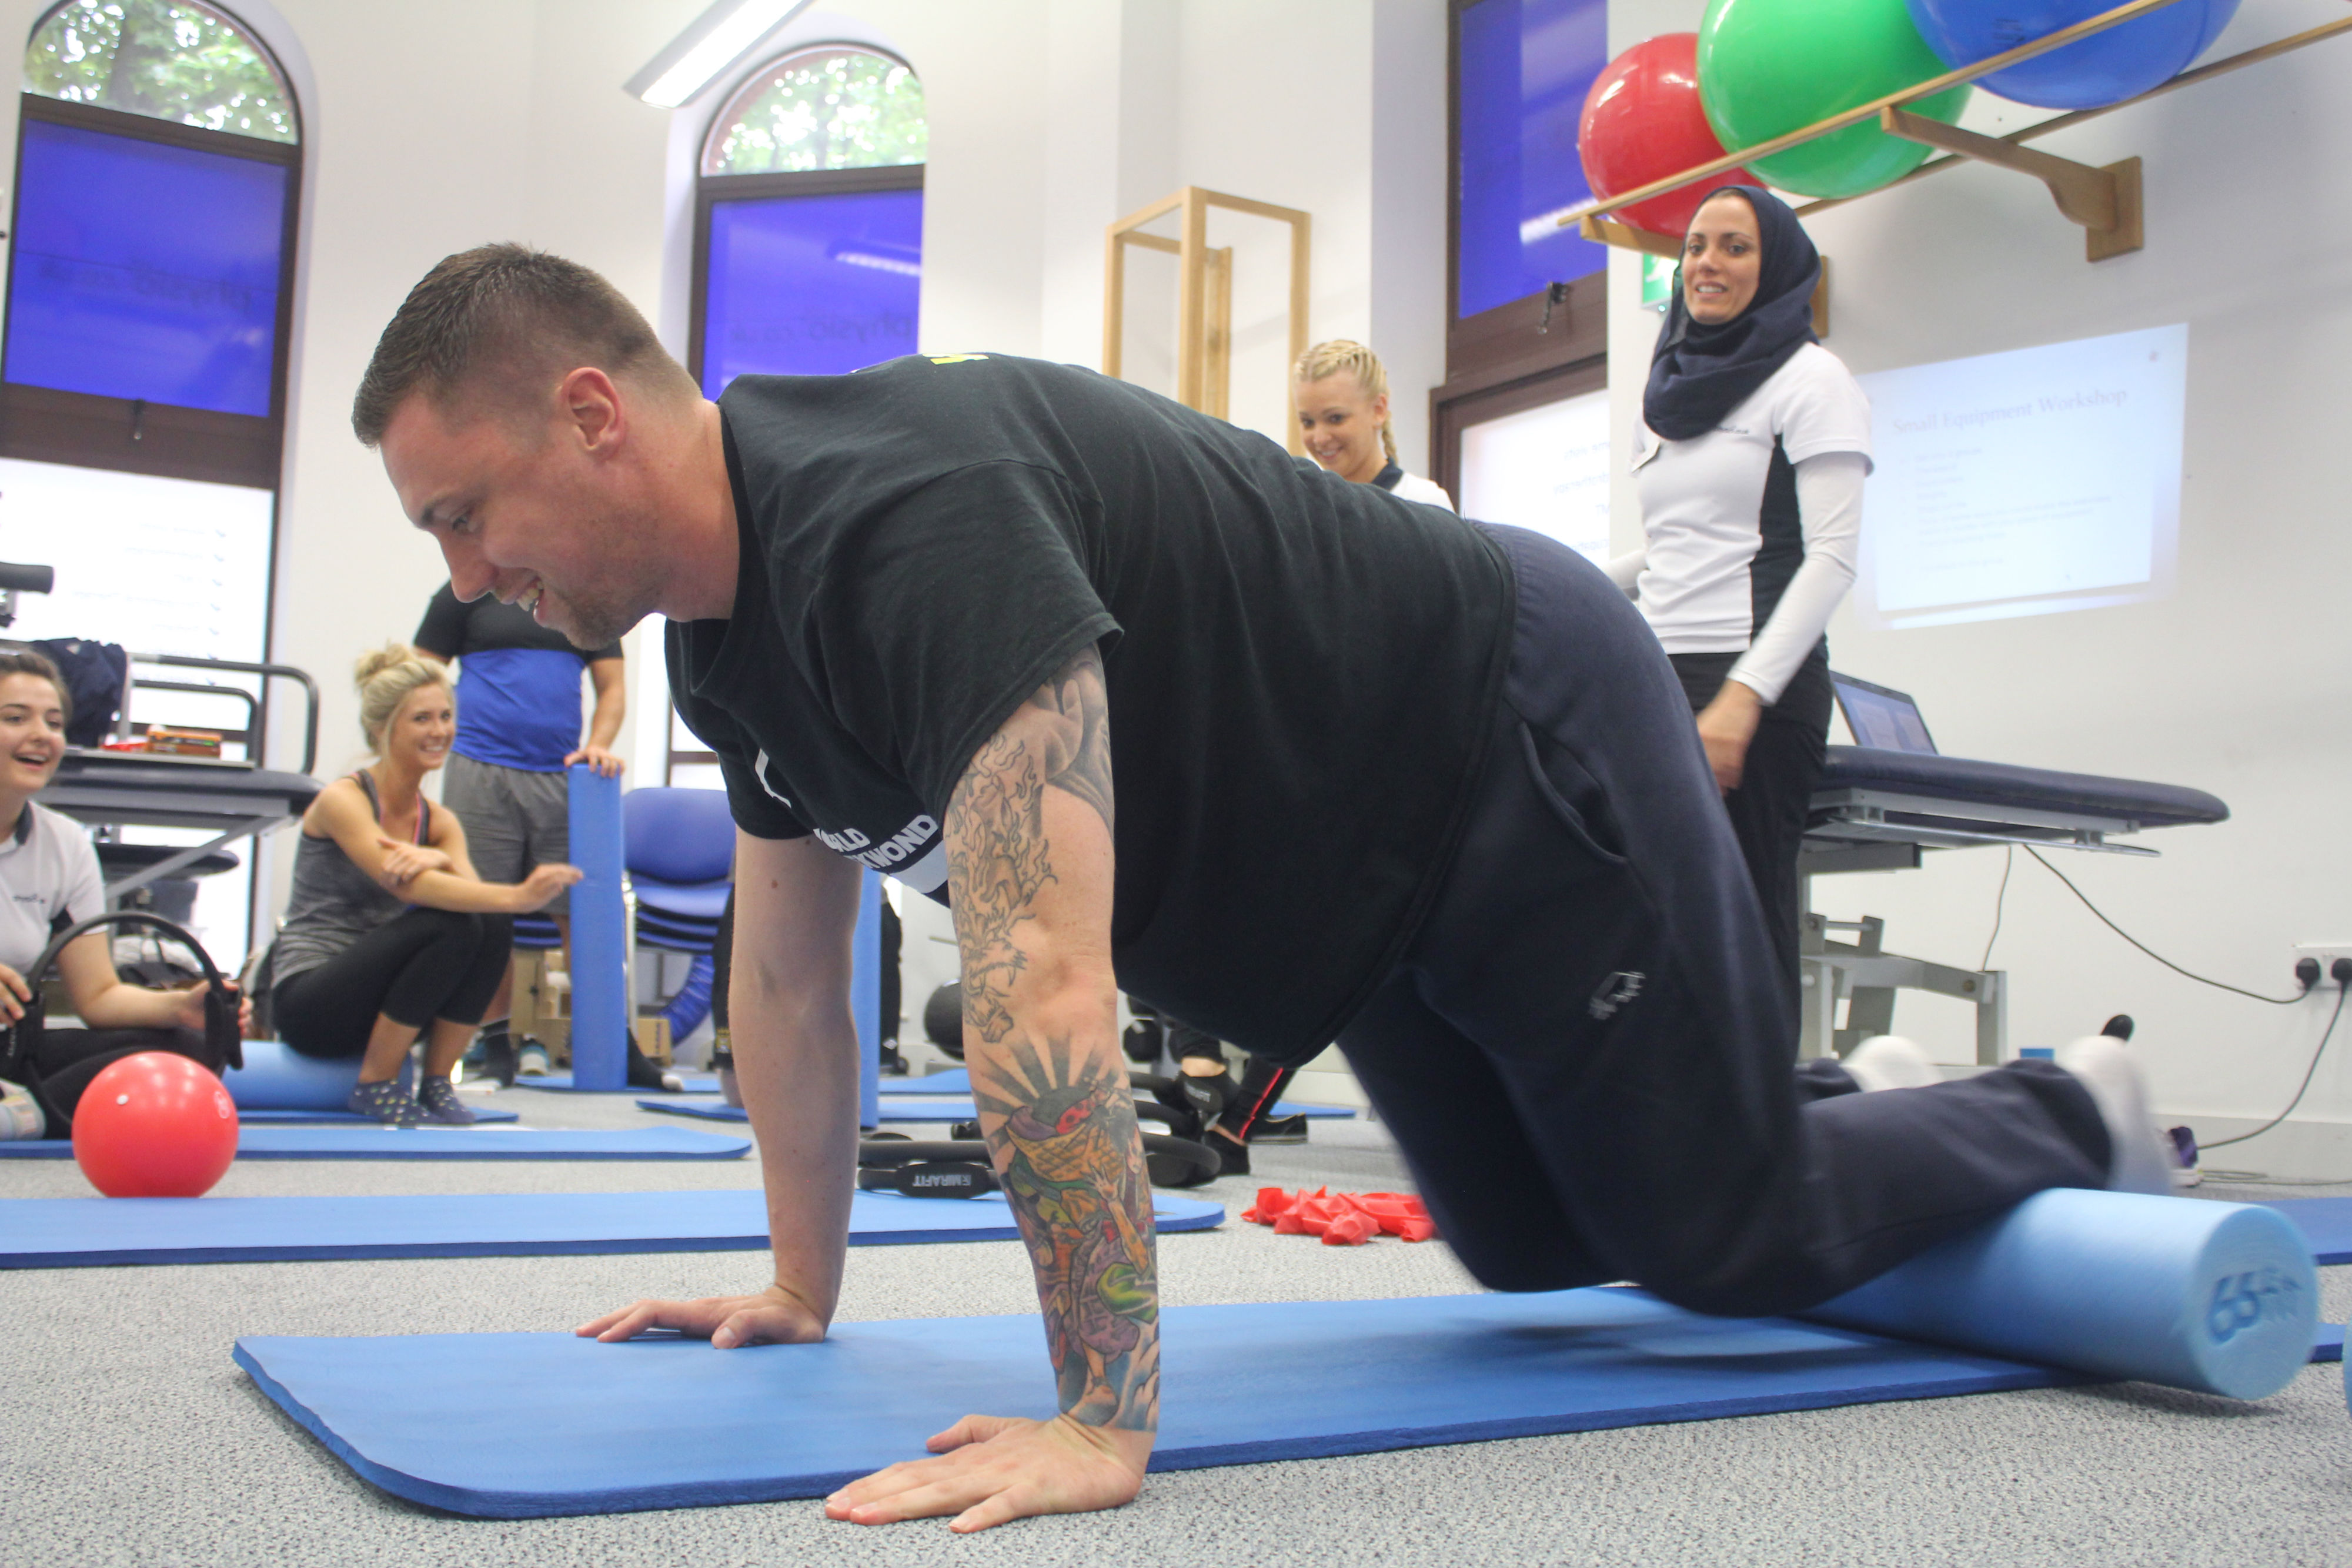 Man crouched on mat doing pilates